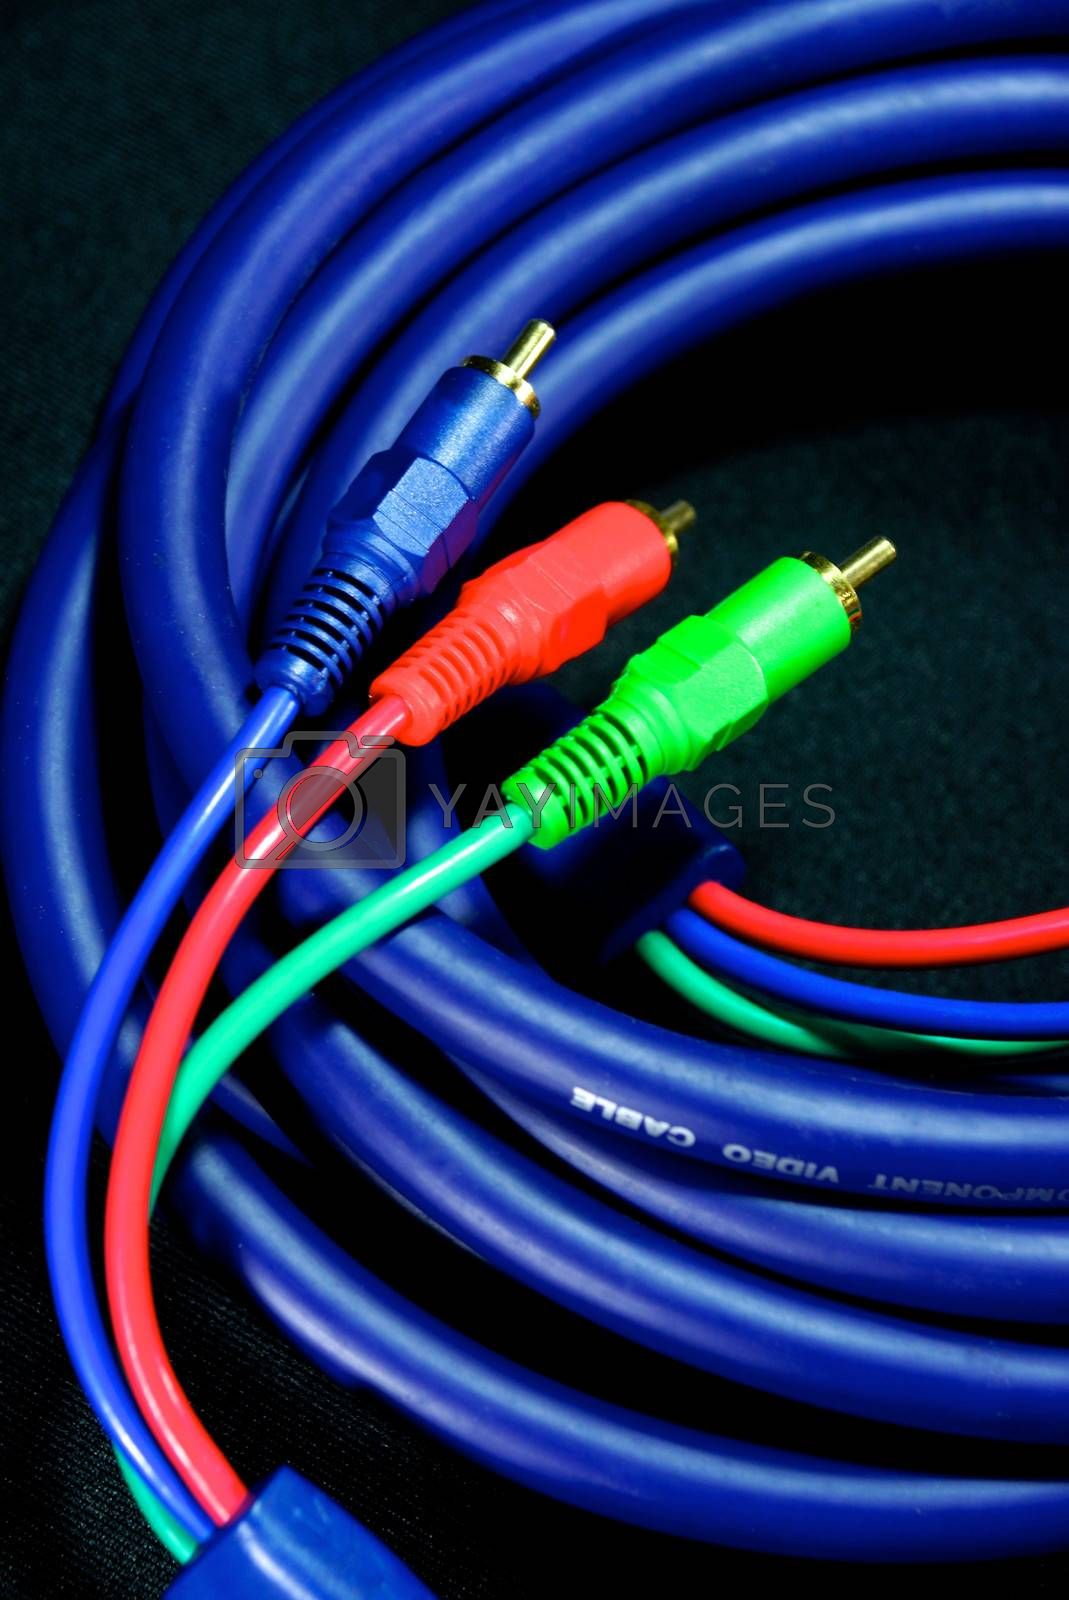 Royalty free image of cable and wire 10 by nattapatt